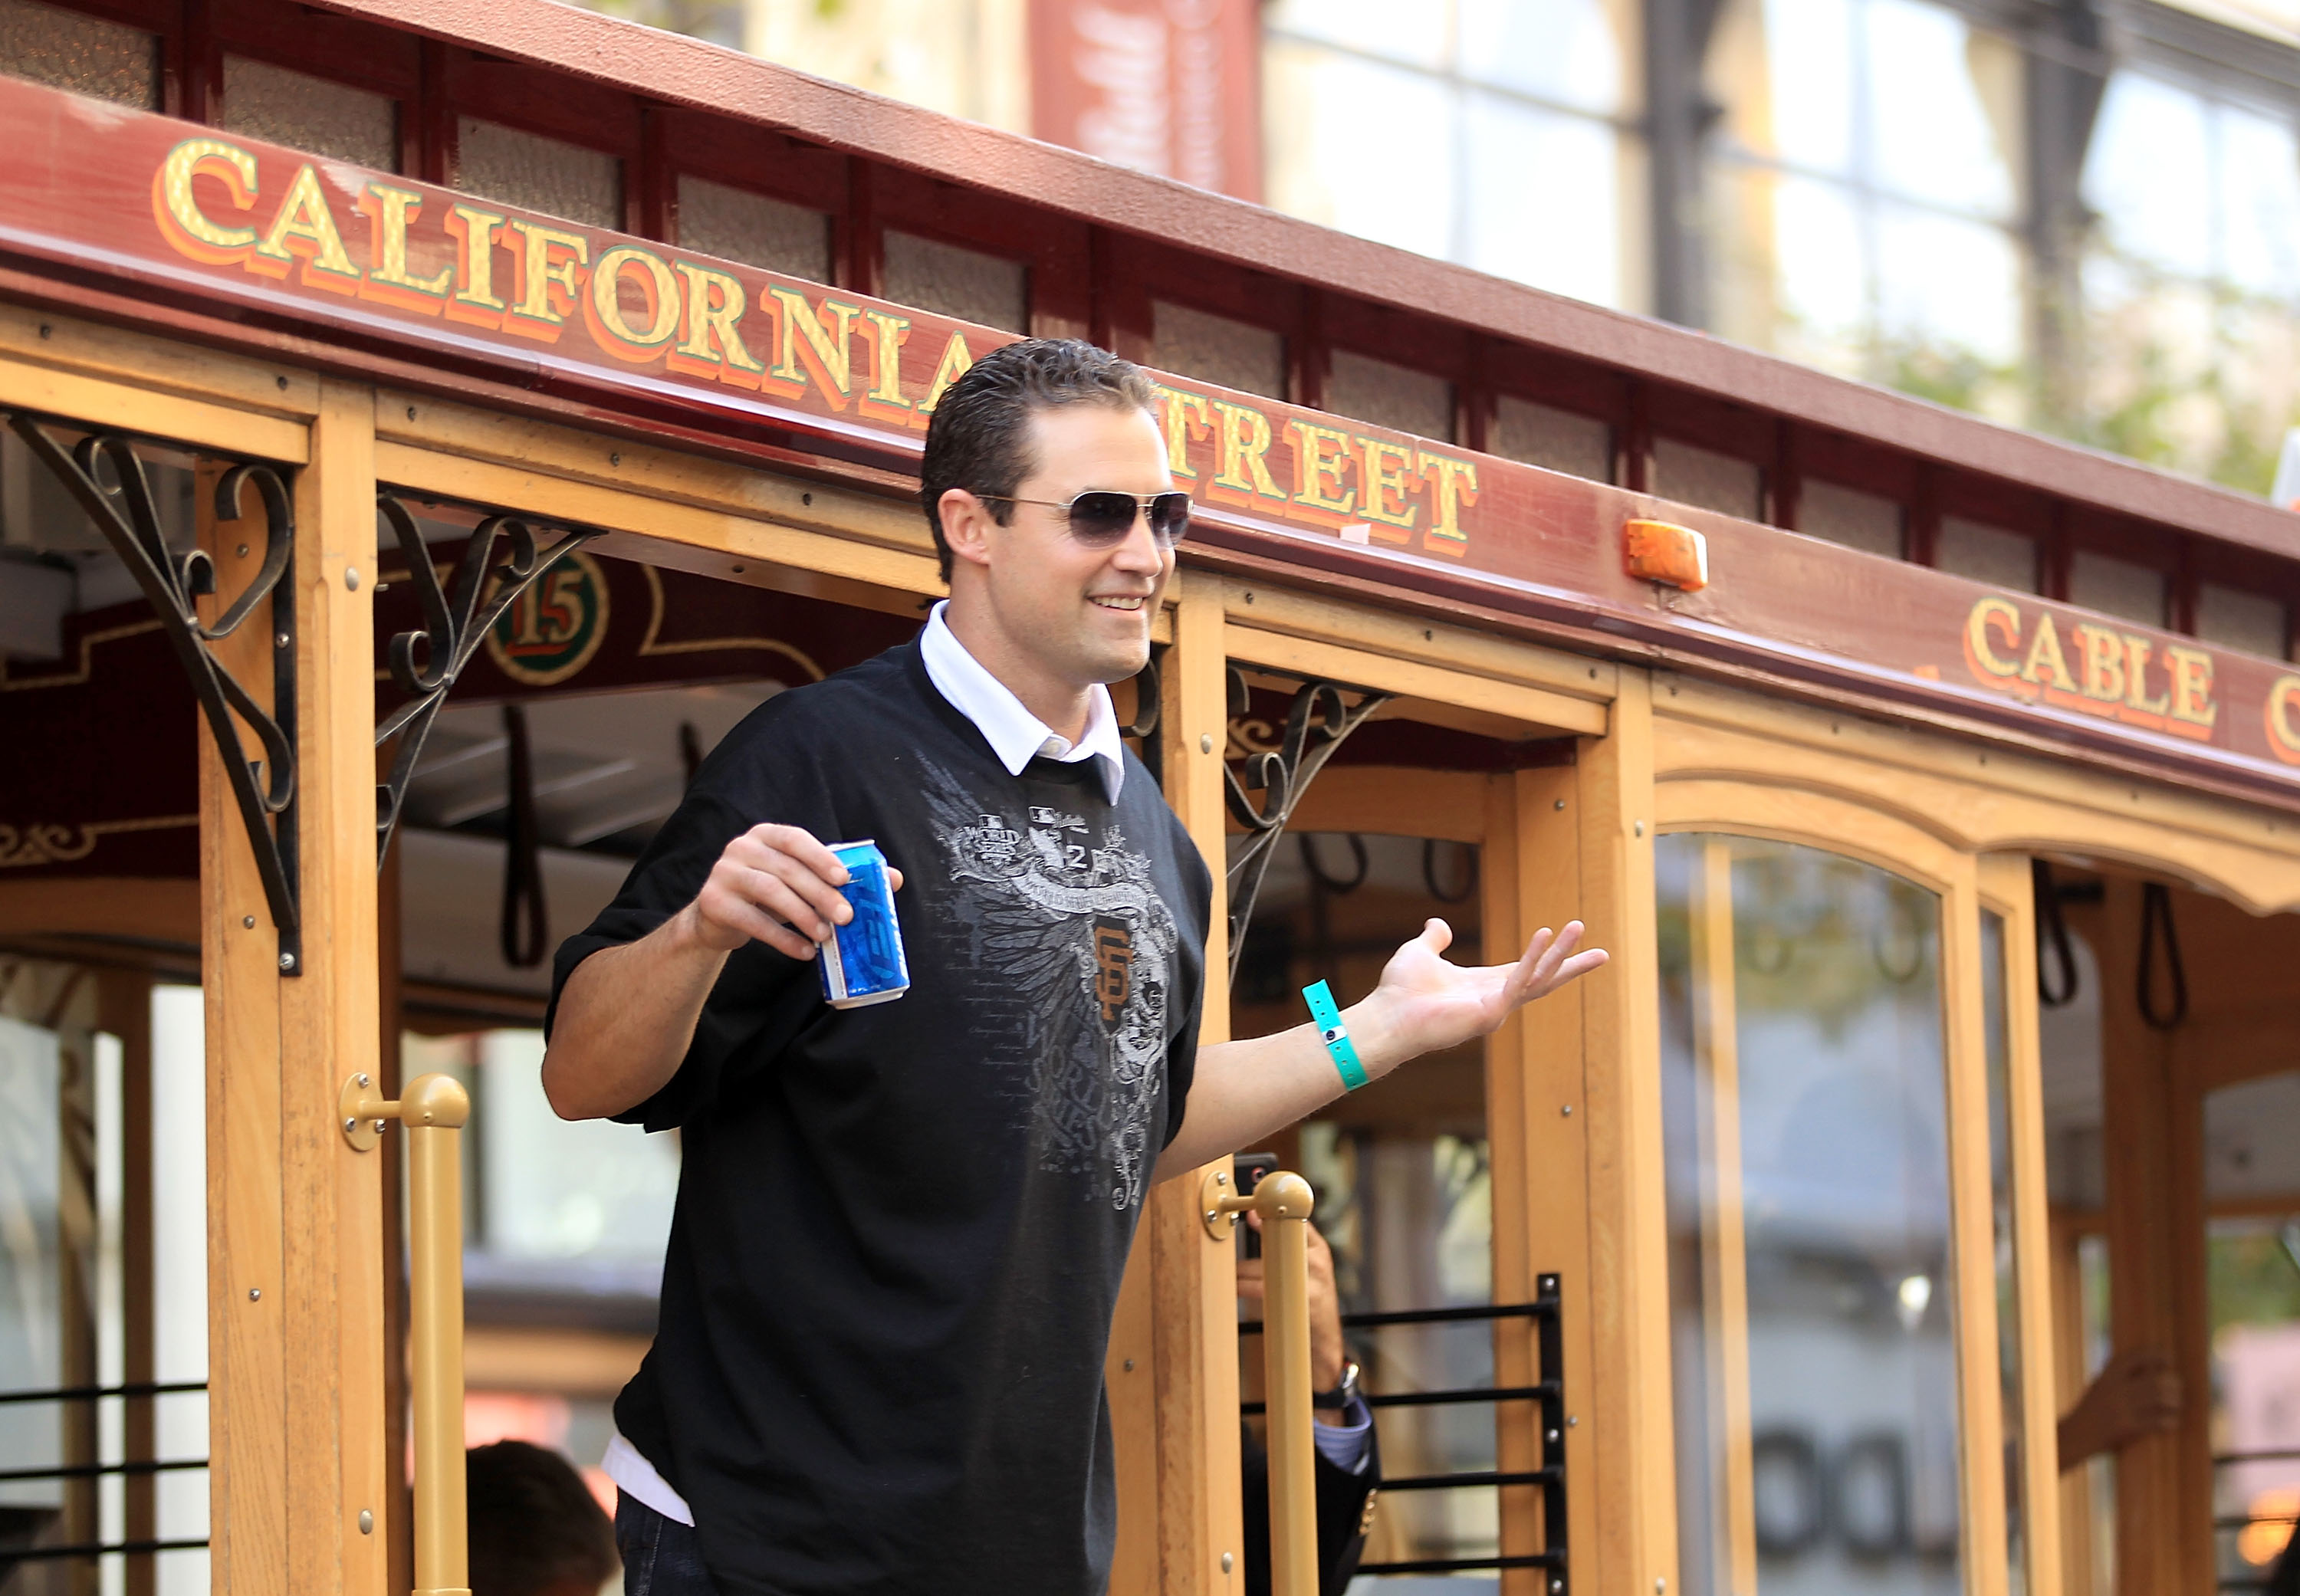 SAN FRANCISCO - NOVEMBER 03:  Pat Burrell of the San Francisco Giants rides a cable car during the San Francisco Giants victory parade on November 3, 2010 in San Francisco, California.  (Photo by Ezra Shaw/Getty Images)